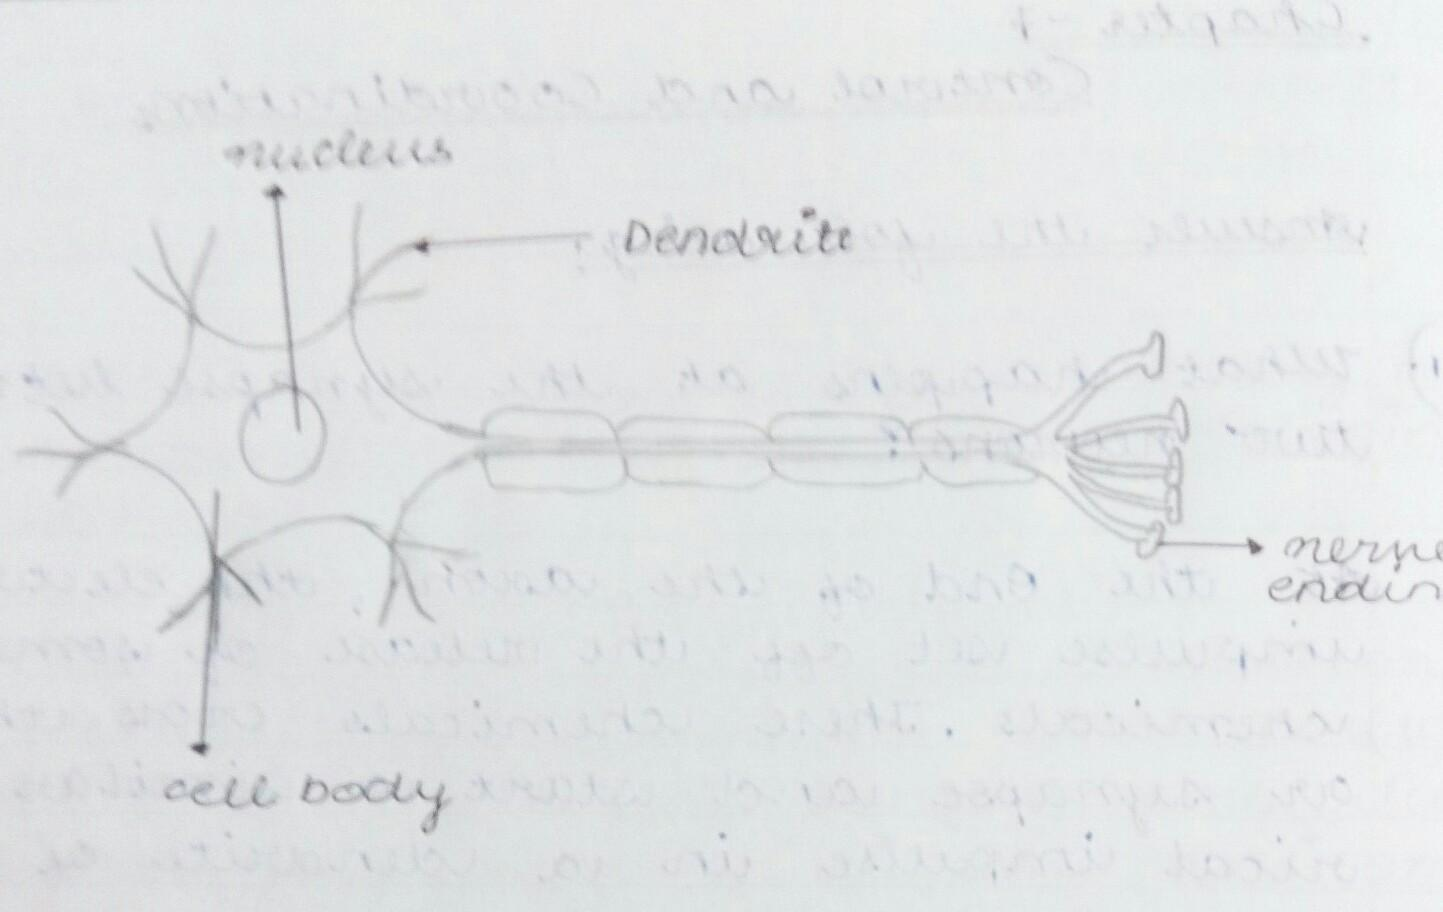 Is This The Correct Figure Of An Neuron